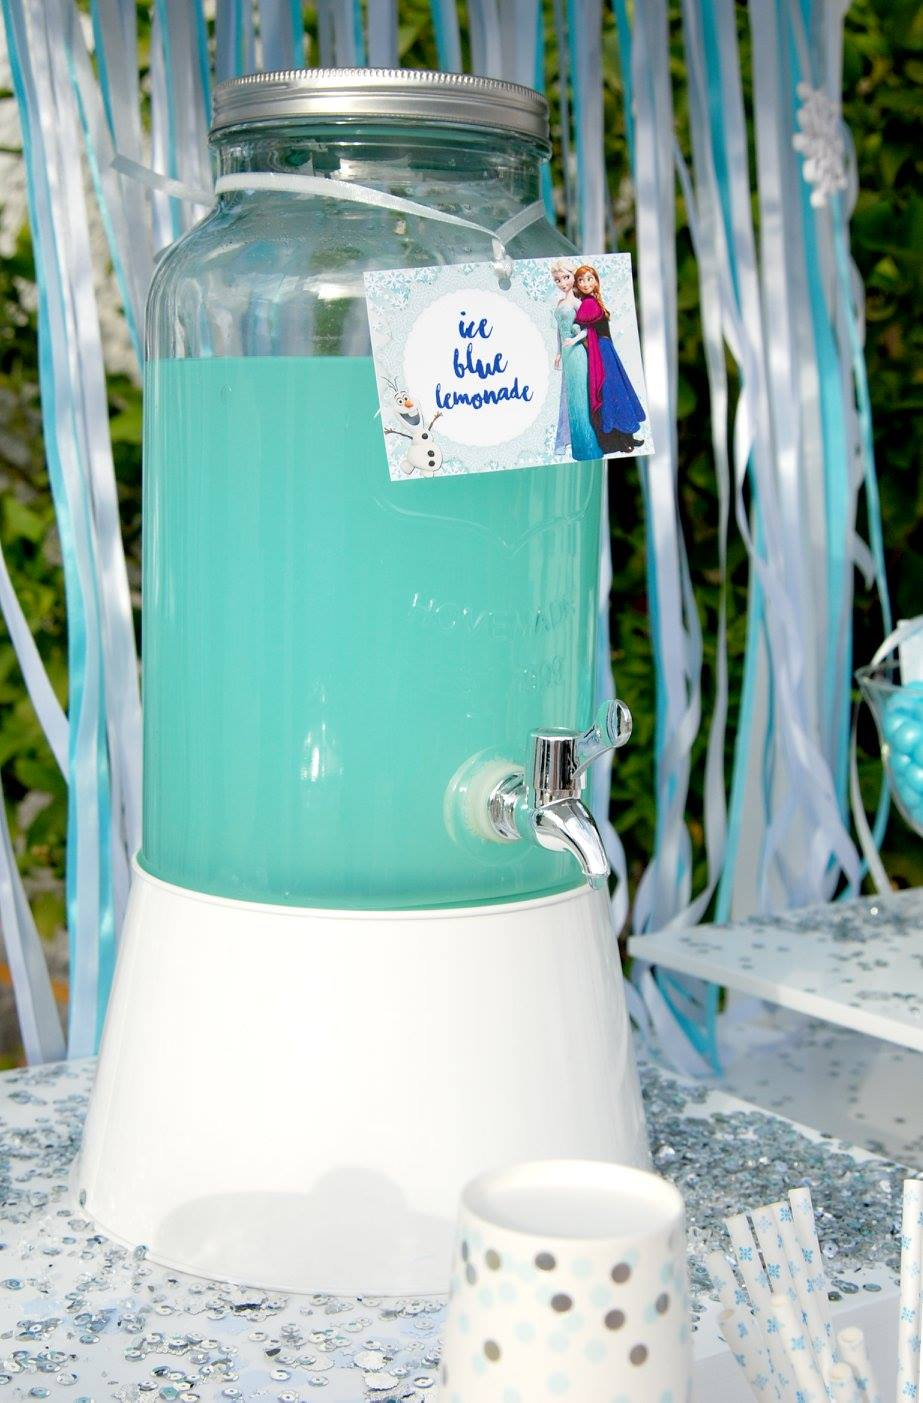 Frozen Elsa Anna party ice blue lemonade glass jar dispencer candy bar ribbons sparkle yard garden